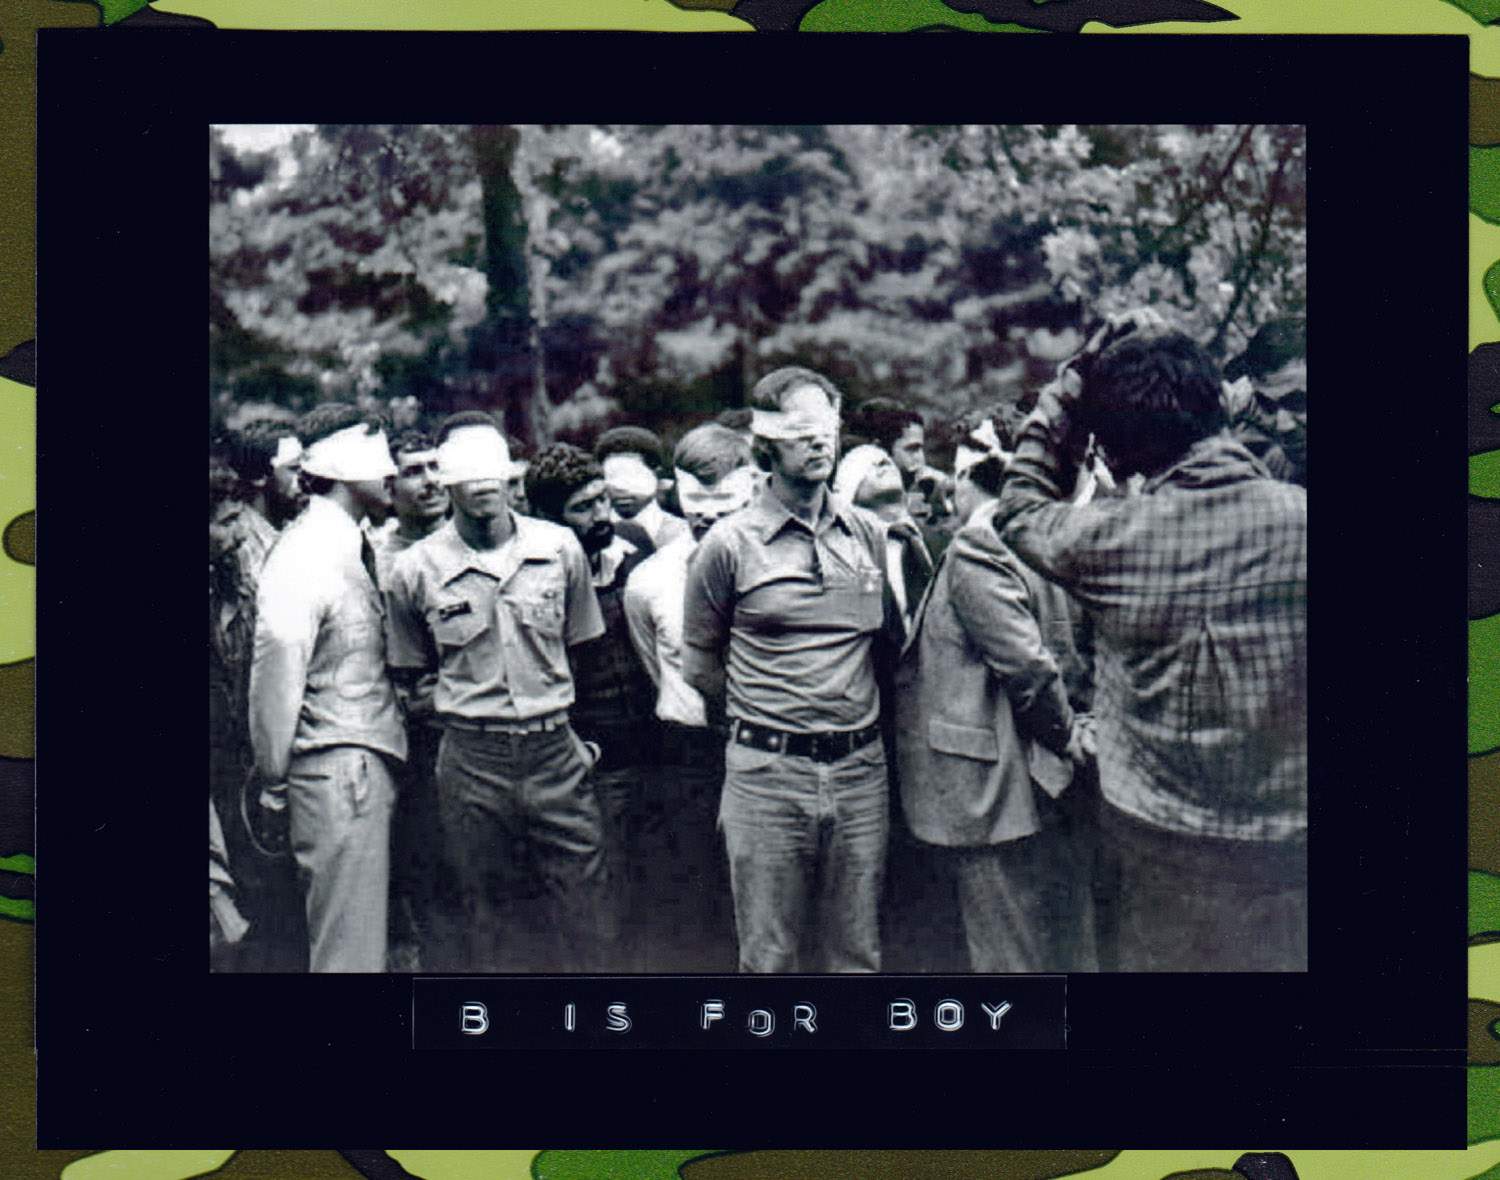 Blindfolded American hostages are gathered before the public and photographed by their Iranian captors on November 4, 1979, the first day of occupation of the U.S. Embassy in Tehran. The picture, obtained by UPI after the FBI showed no interest, was brought into the U.S. by an Iranian.